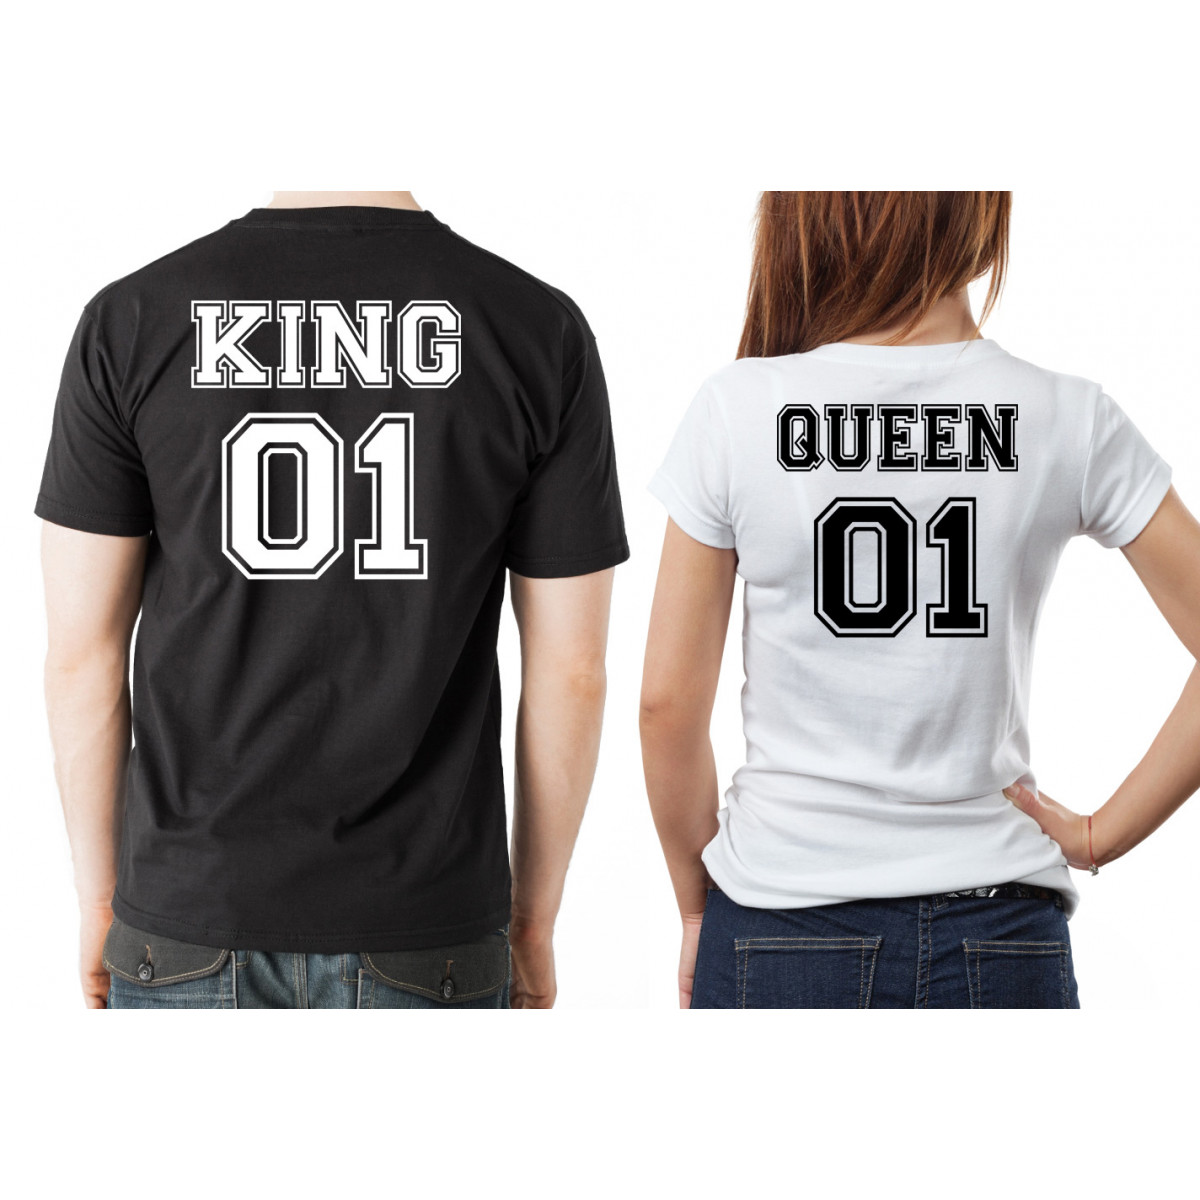 Black queen t shirt - Couple T Shirt King Queen Couple Tee Shirts